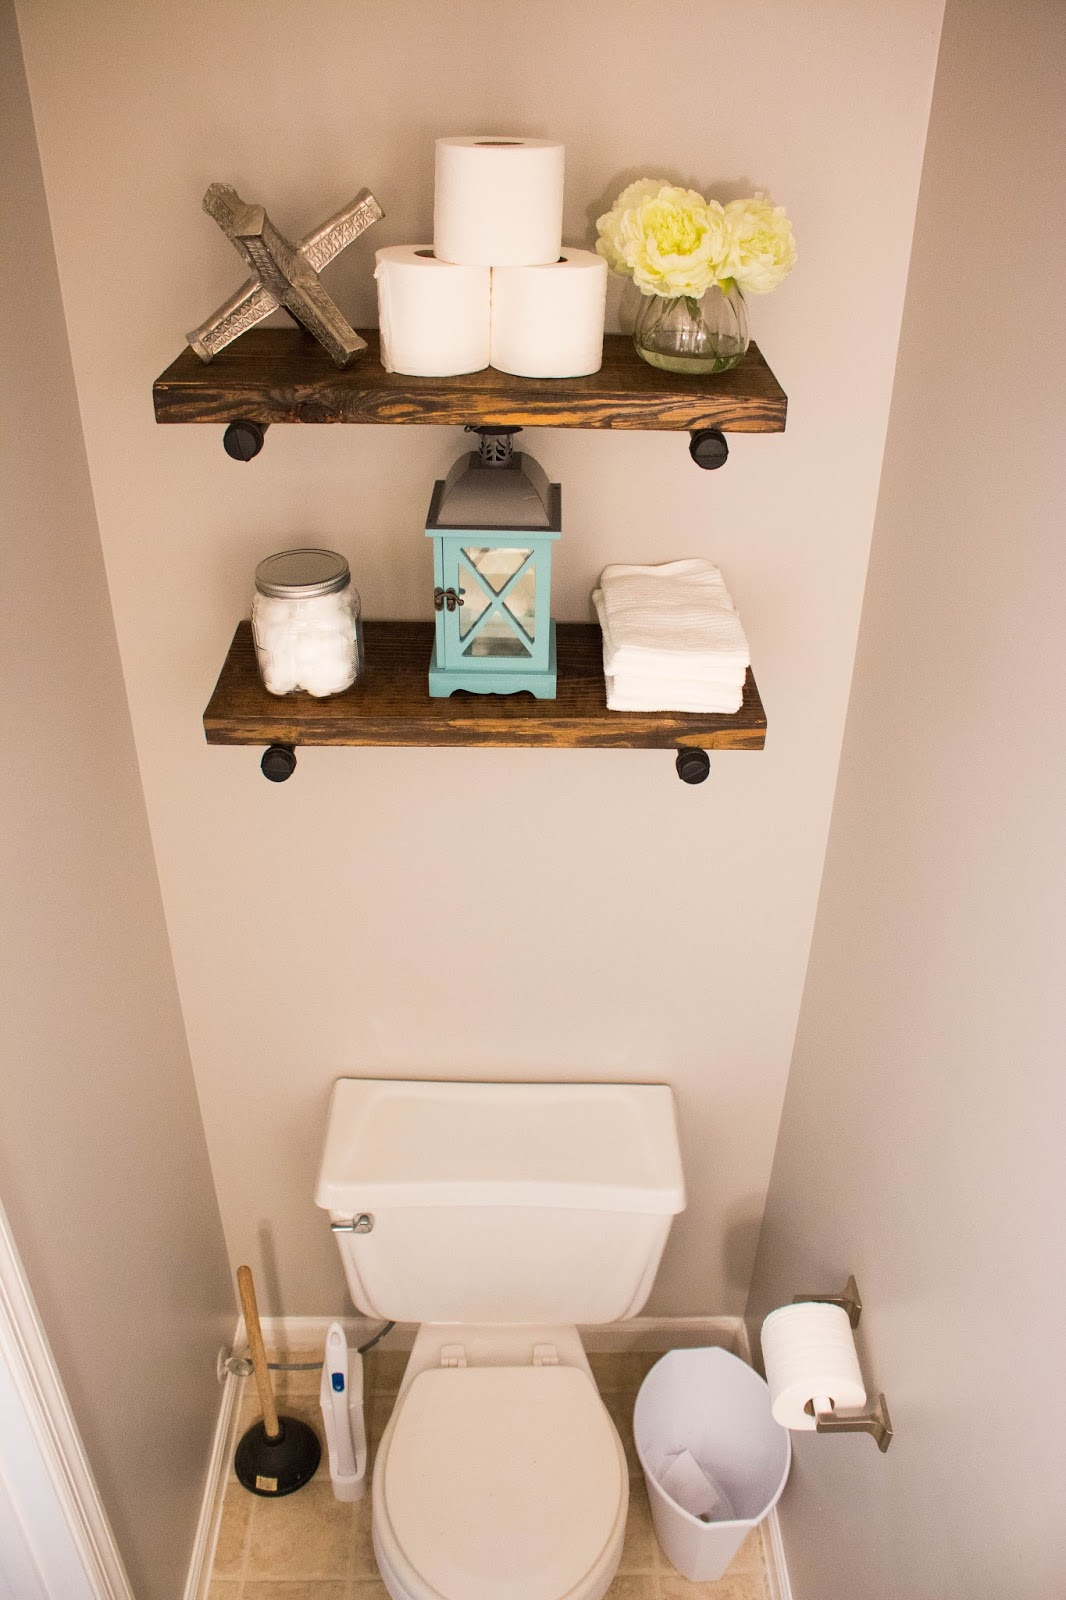 DIY industrial pipe shelves step by step tutorial. DIY pipe shelves freestanding. How much weight can pipe shelves hold. Pipe shelves Home Depot. DIY industrial wall shelf. Galvanized pipe shelves. Iron pipe shelf. DIY shelves.